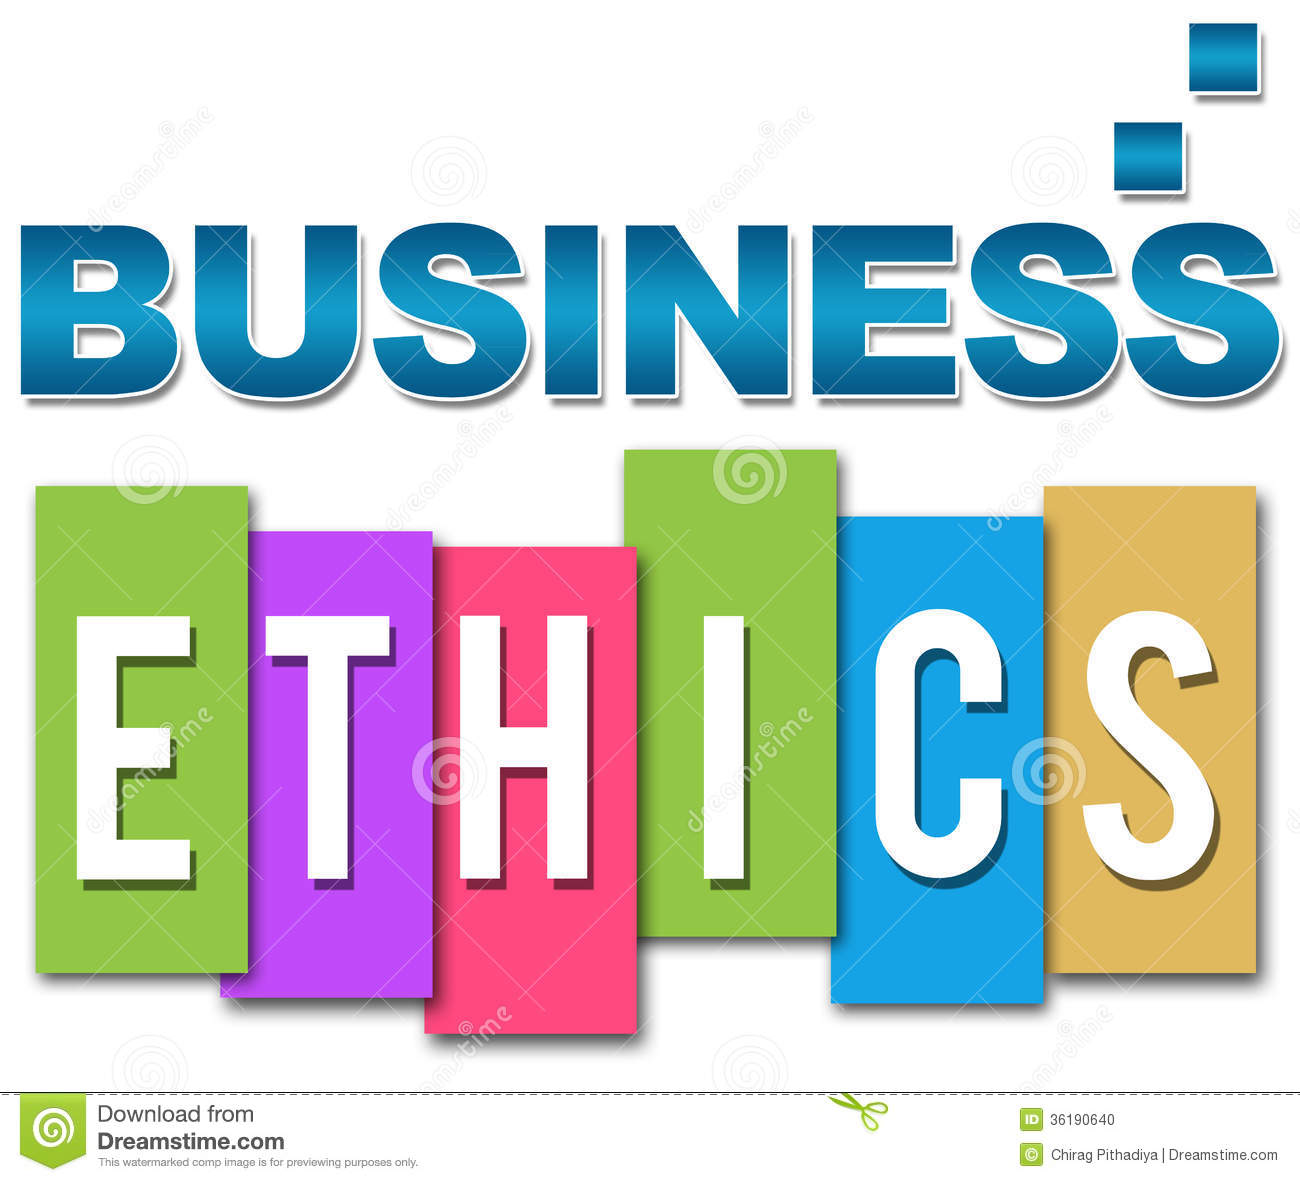 business ethiccs The journal of business ethics publishes only original articles from a wide variety of methodological and disciplinary perspectives concerning ethical issues related to business that bring something new or unique to the discourse.